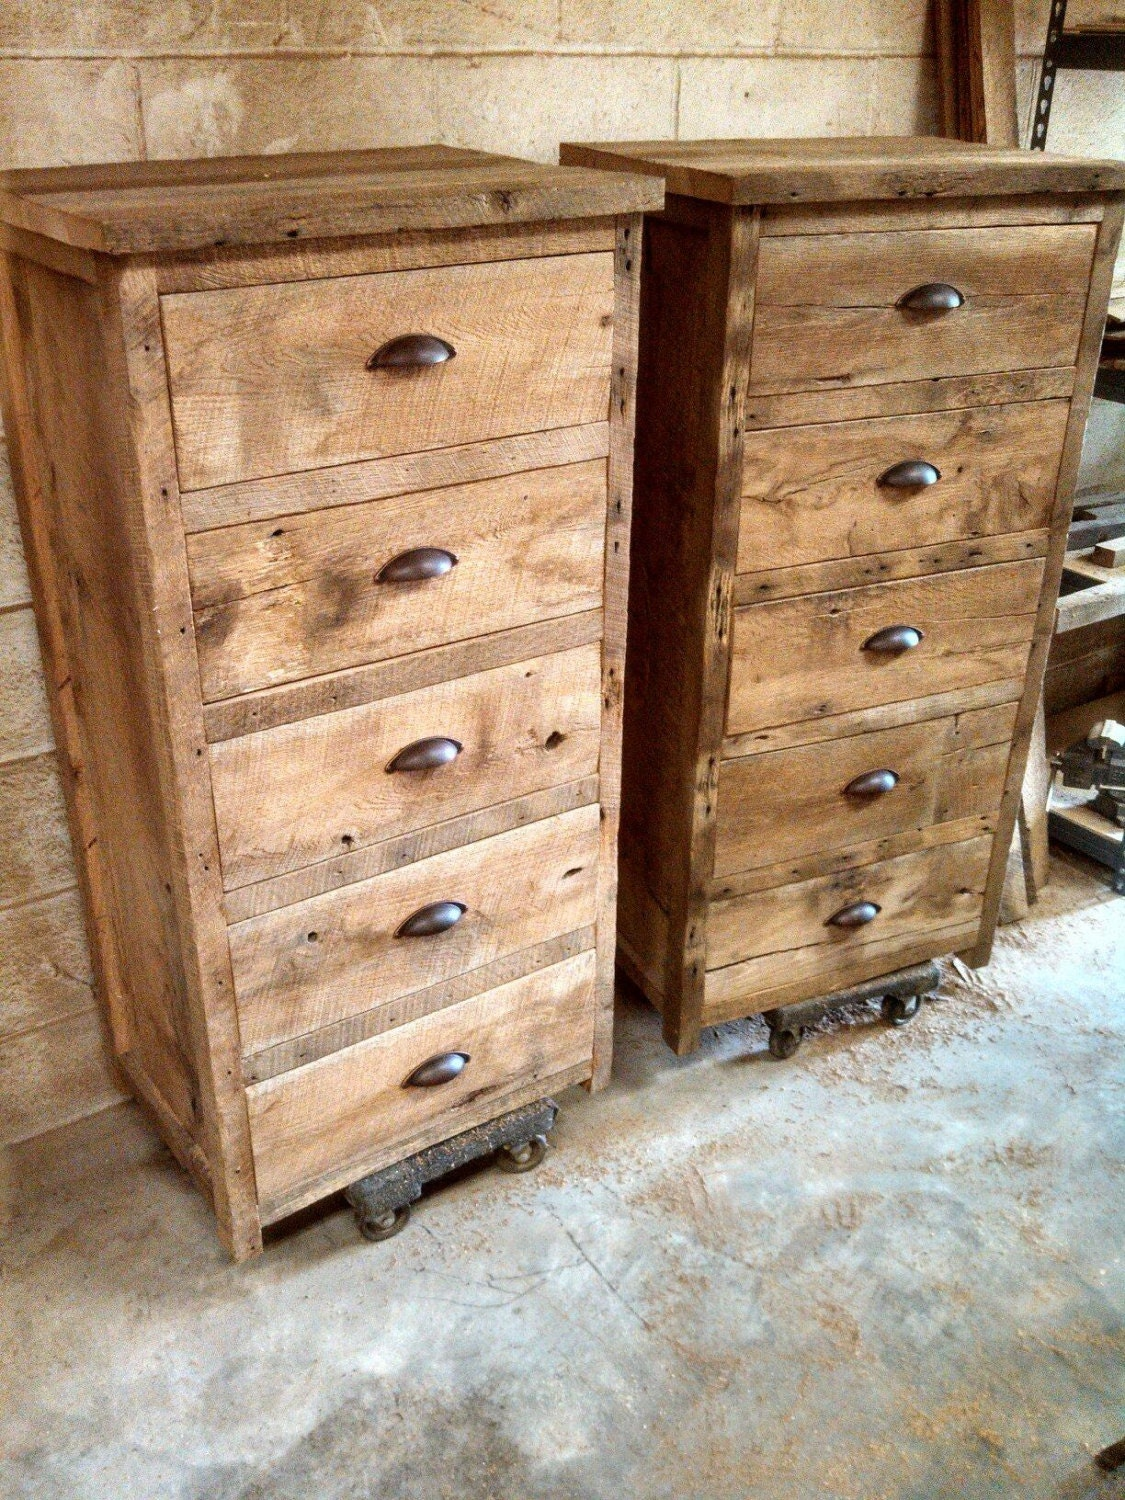 Whinteys custom rustic barn wood tall wide dresser